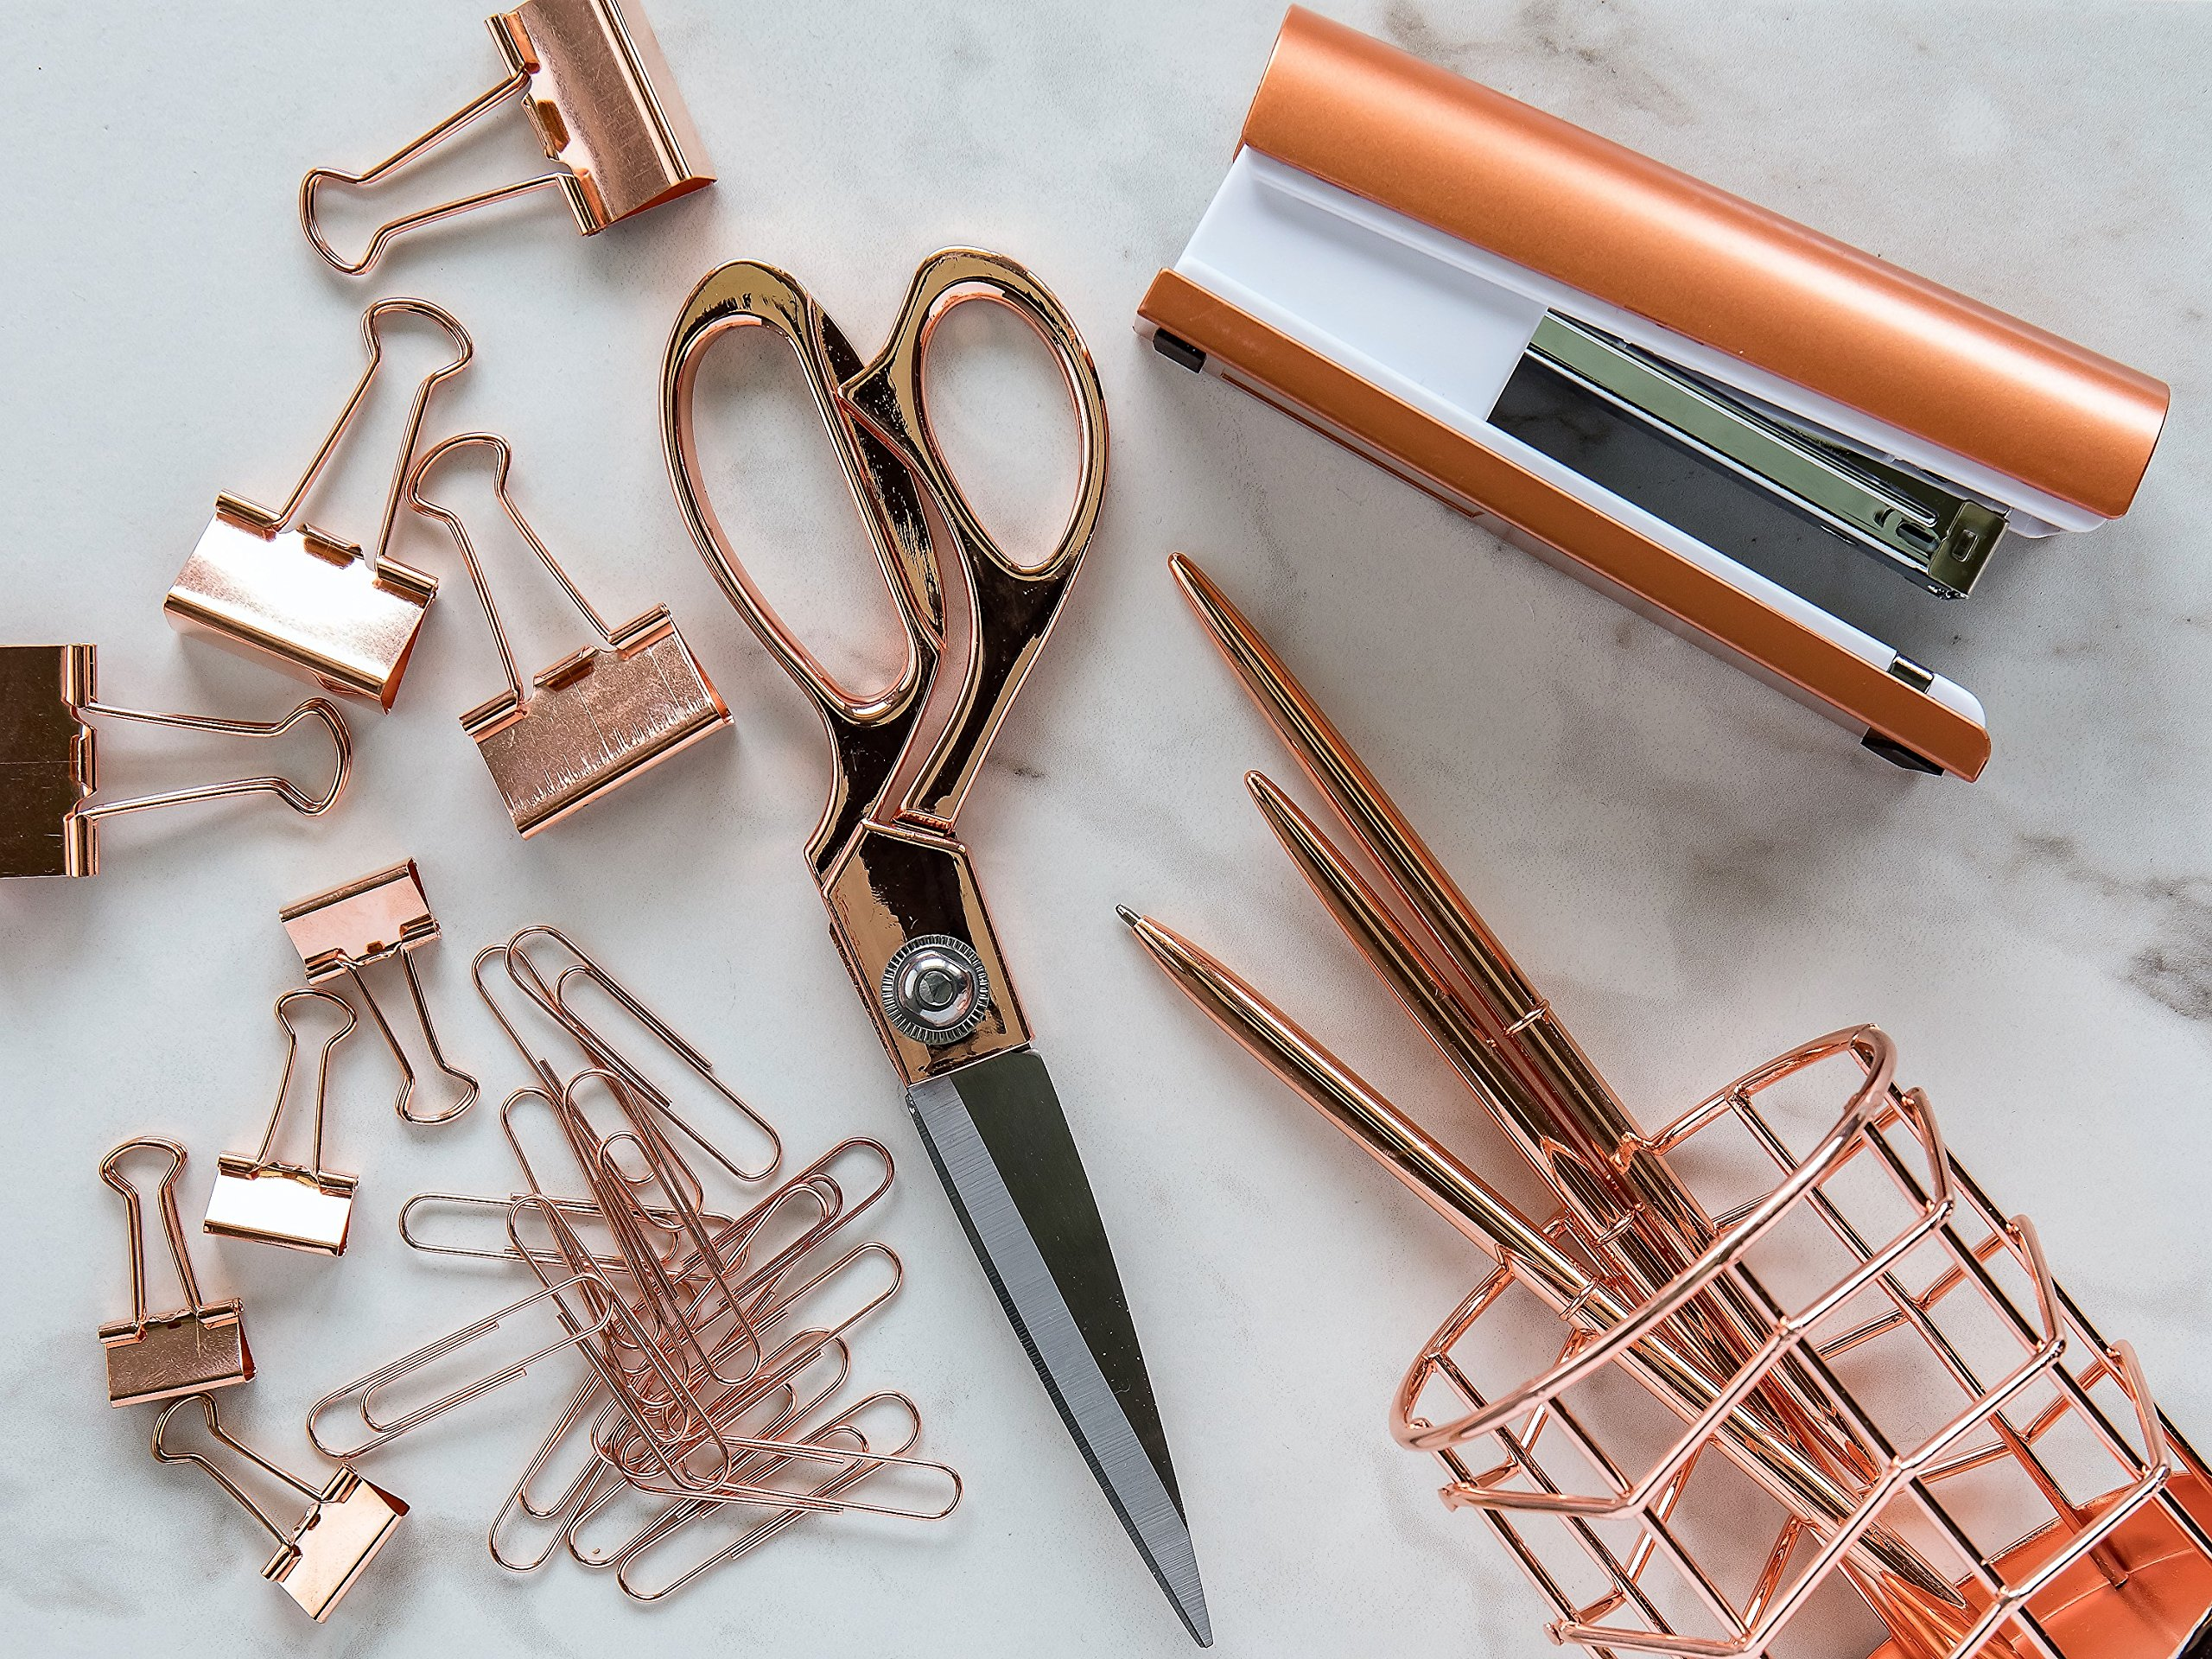 Rose Gold Desk Accessories | 7 Desktop Essentials (44 Items Total) | Office Supply Set & Organizer in Rose Gold Décor by Greenline Goods (Image #5)